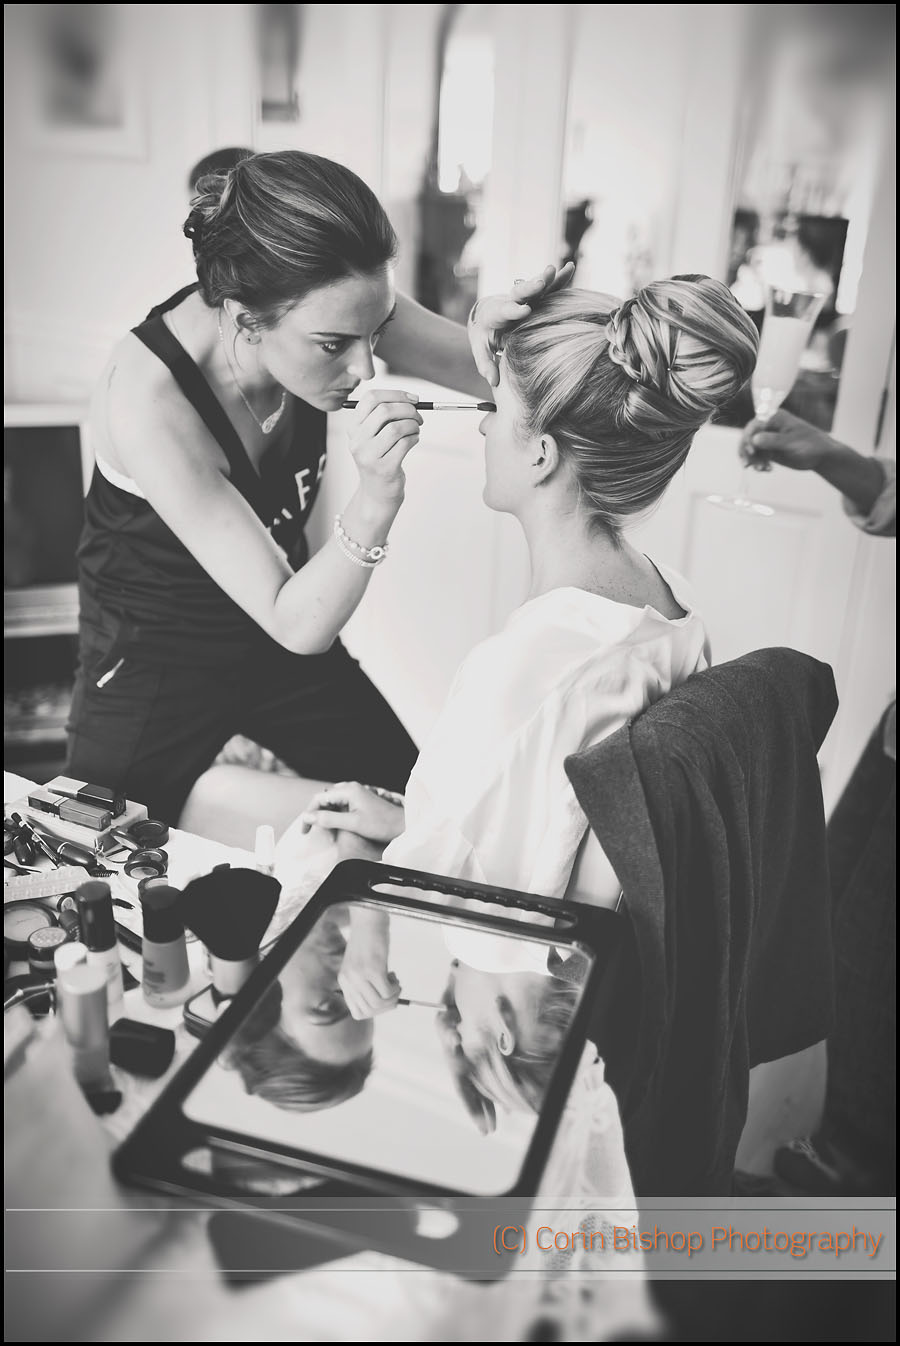 More Bride and Makeup Photographs